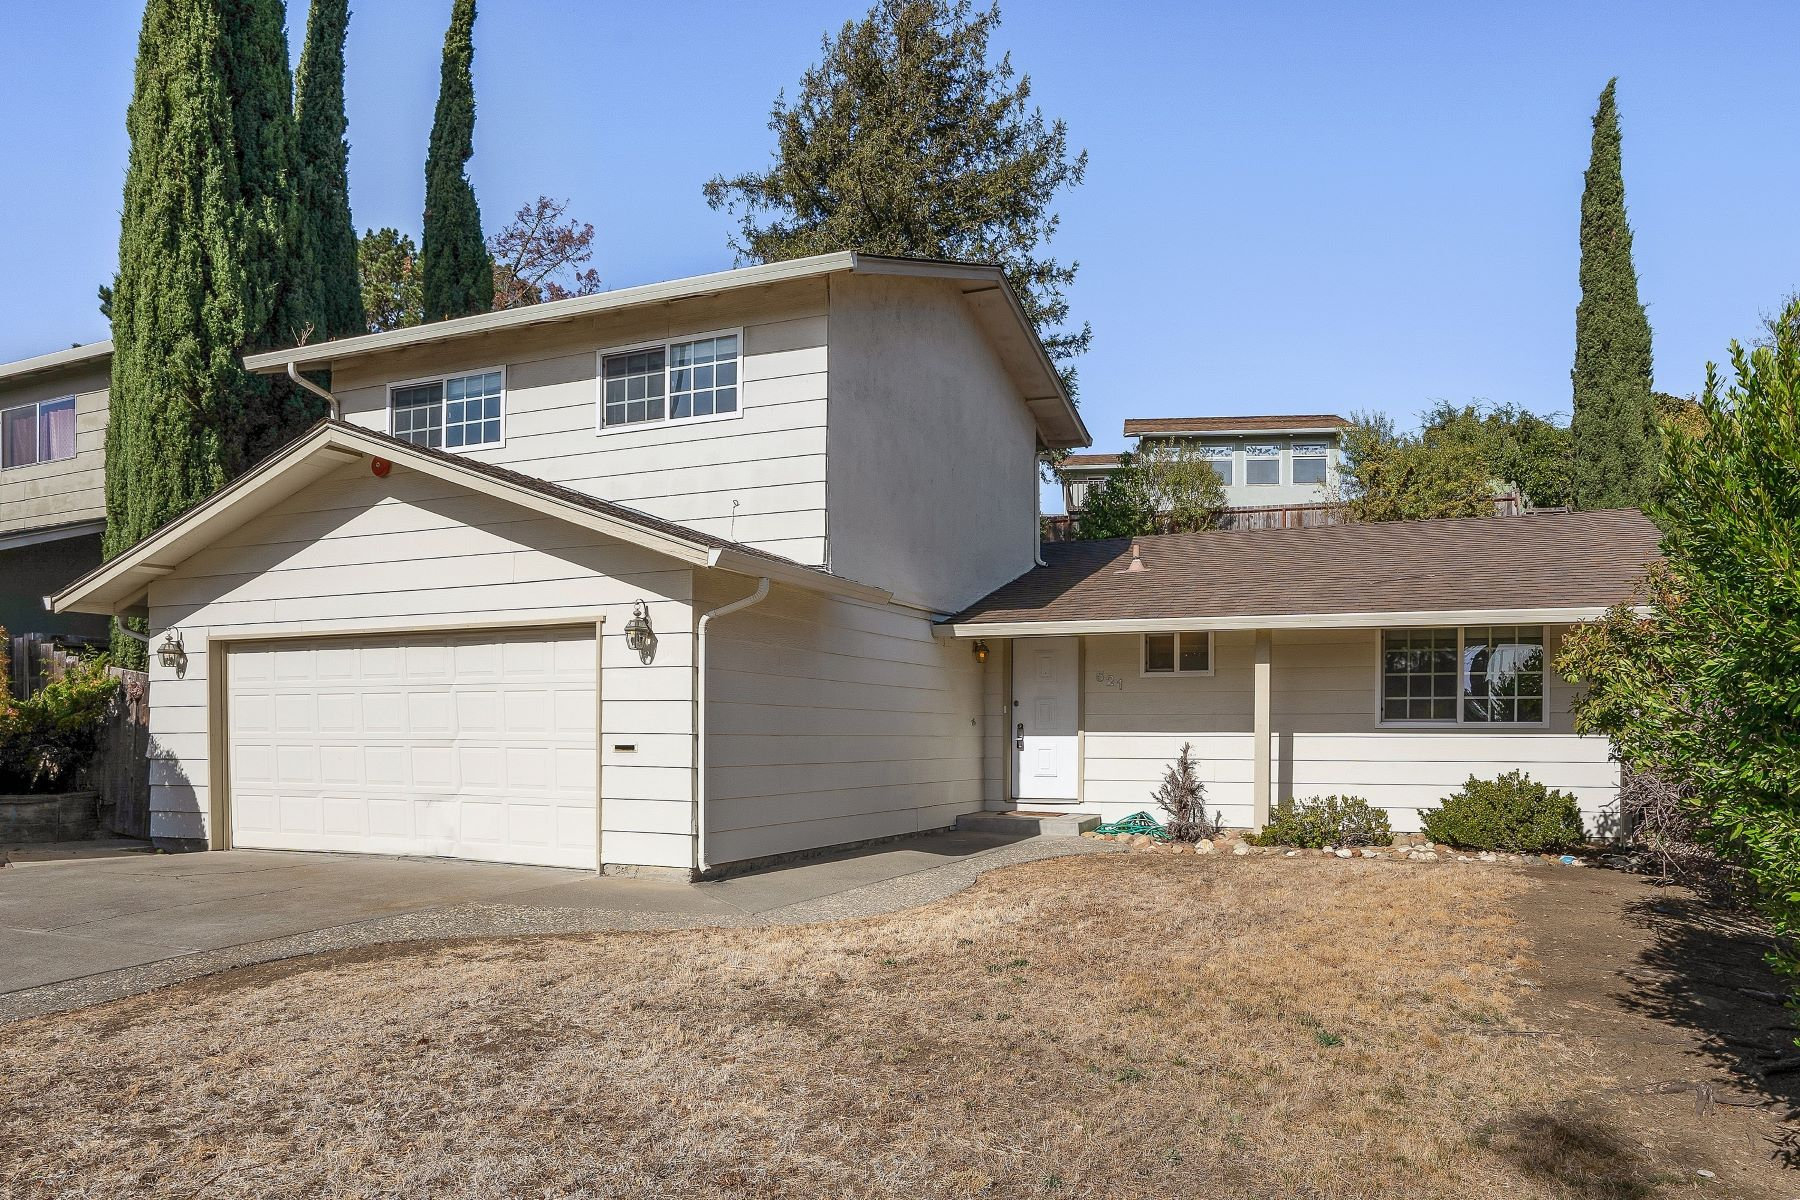 Single Family Homes for Sale at Minutes From Charming Downtown Benicia 521 Viewmont Street Benicia, California 94510 United States